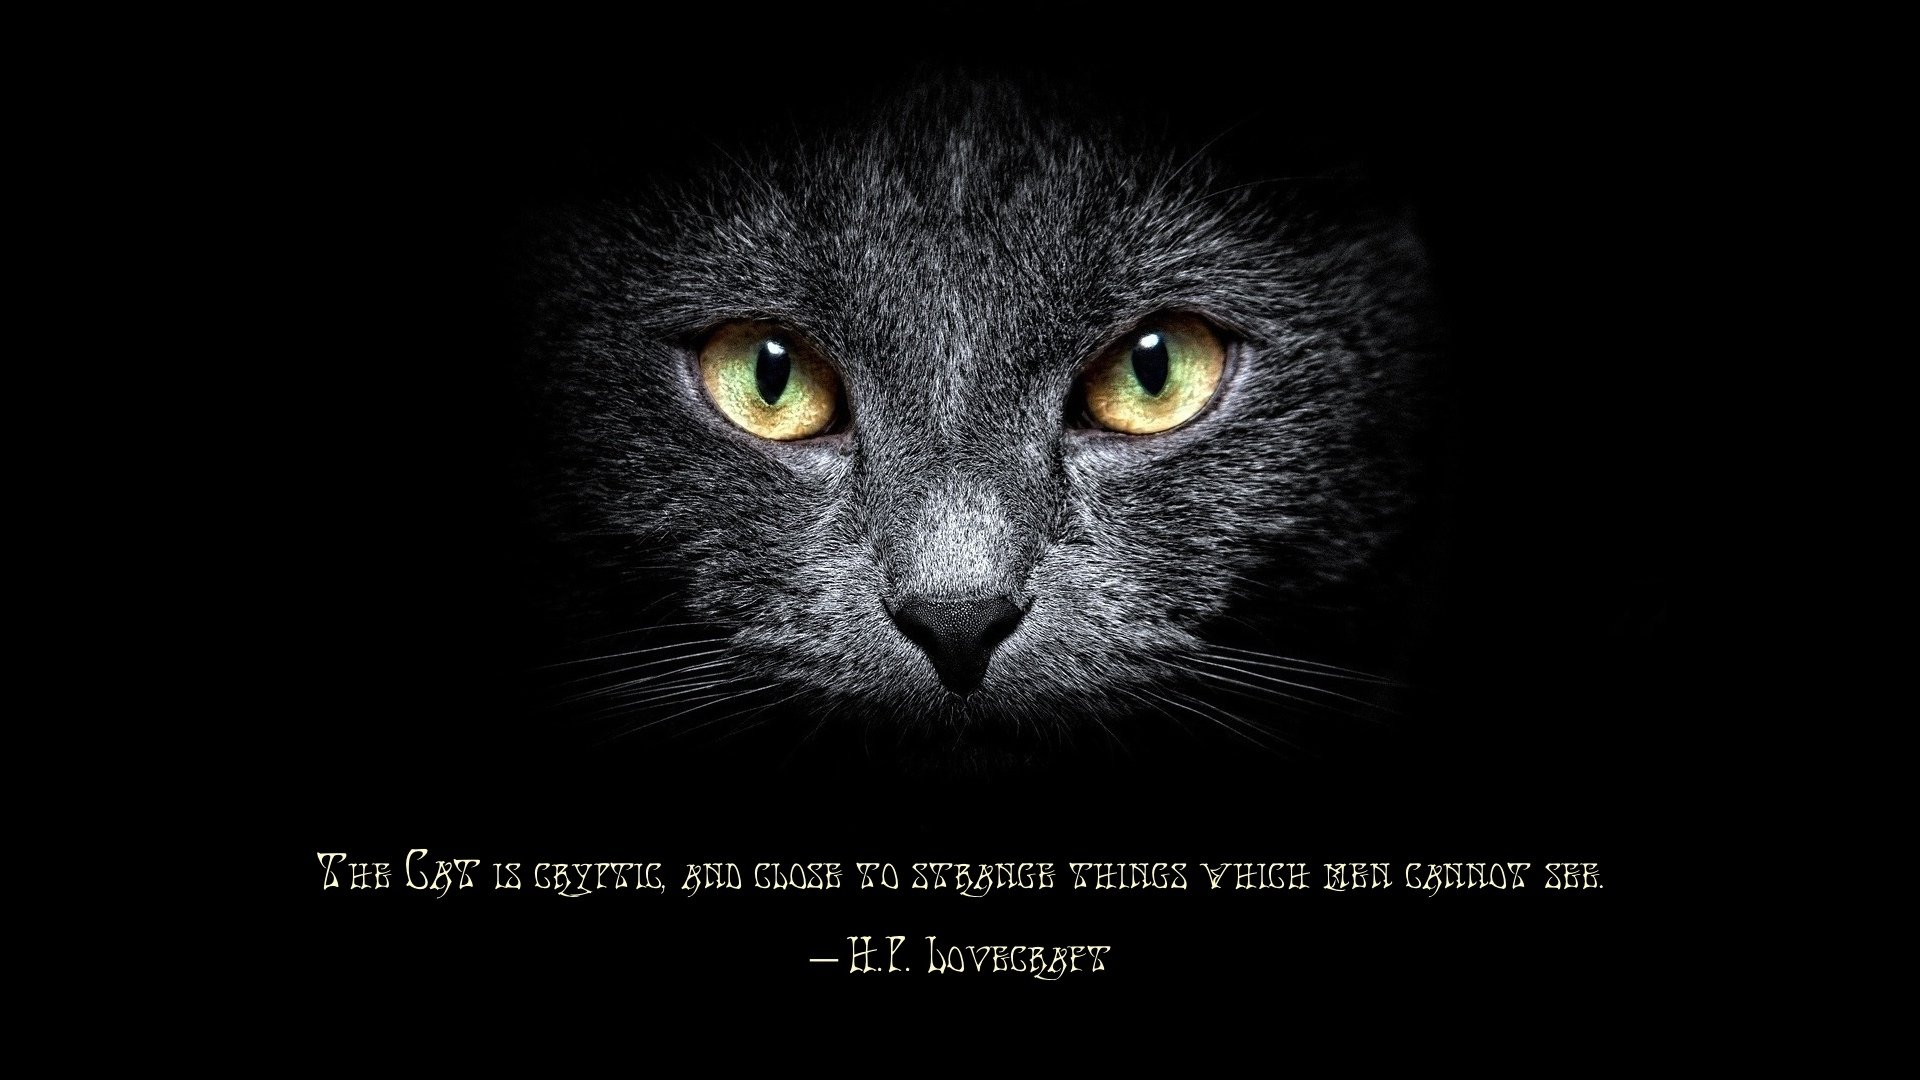 h.p. lovecraft quote hd wallpaper | background image | 1920x1080